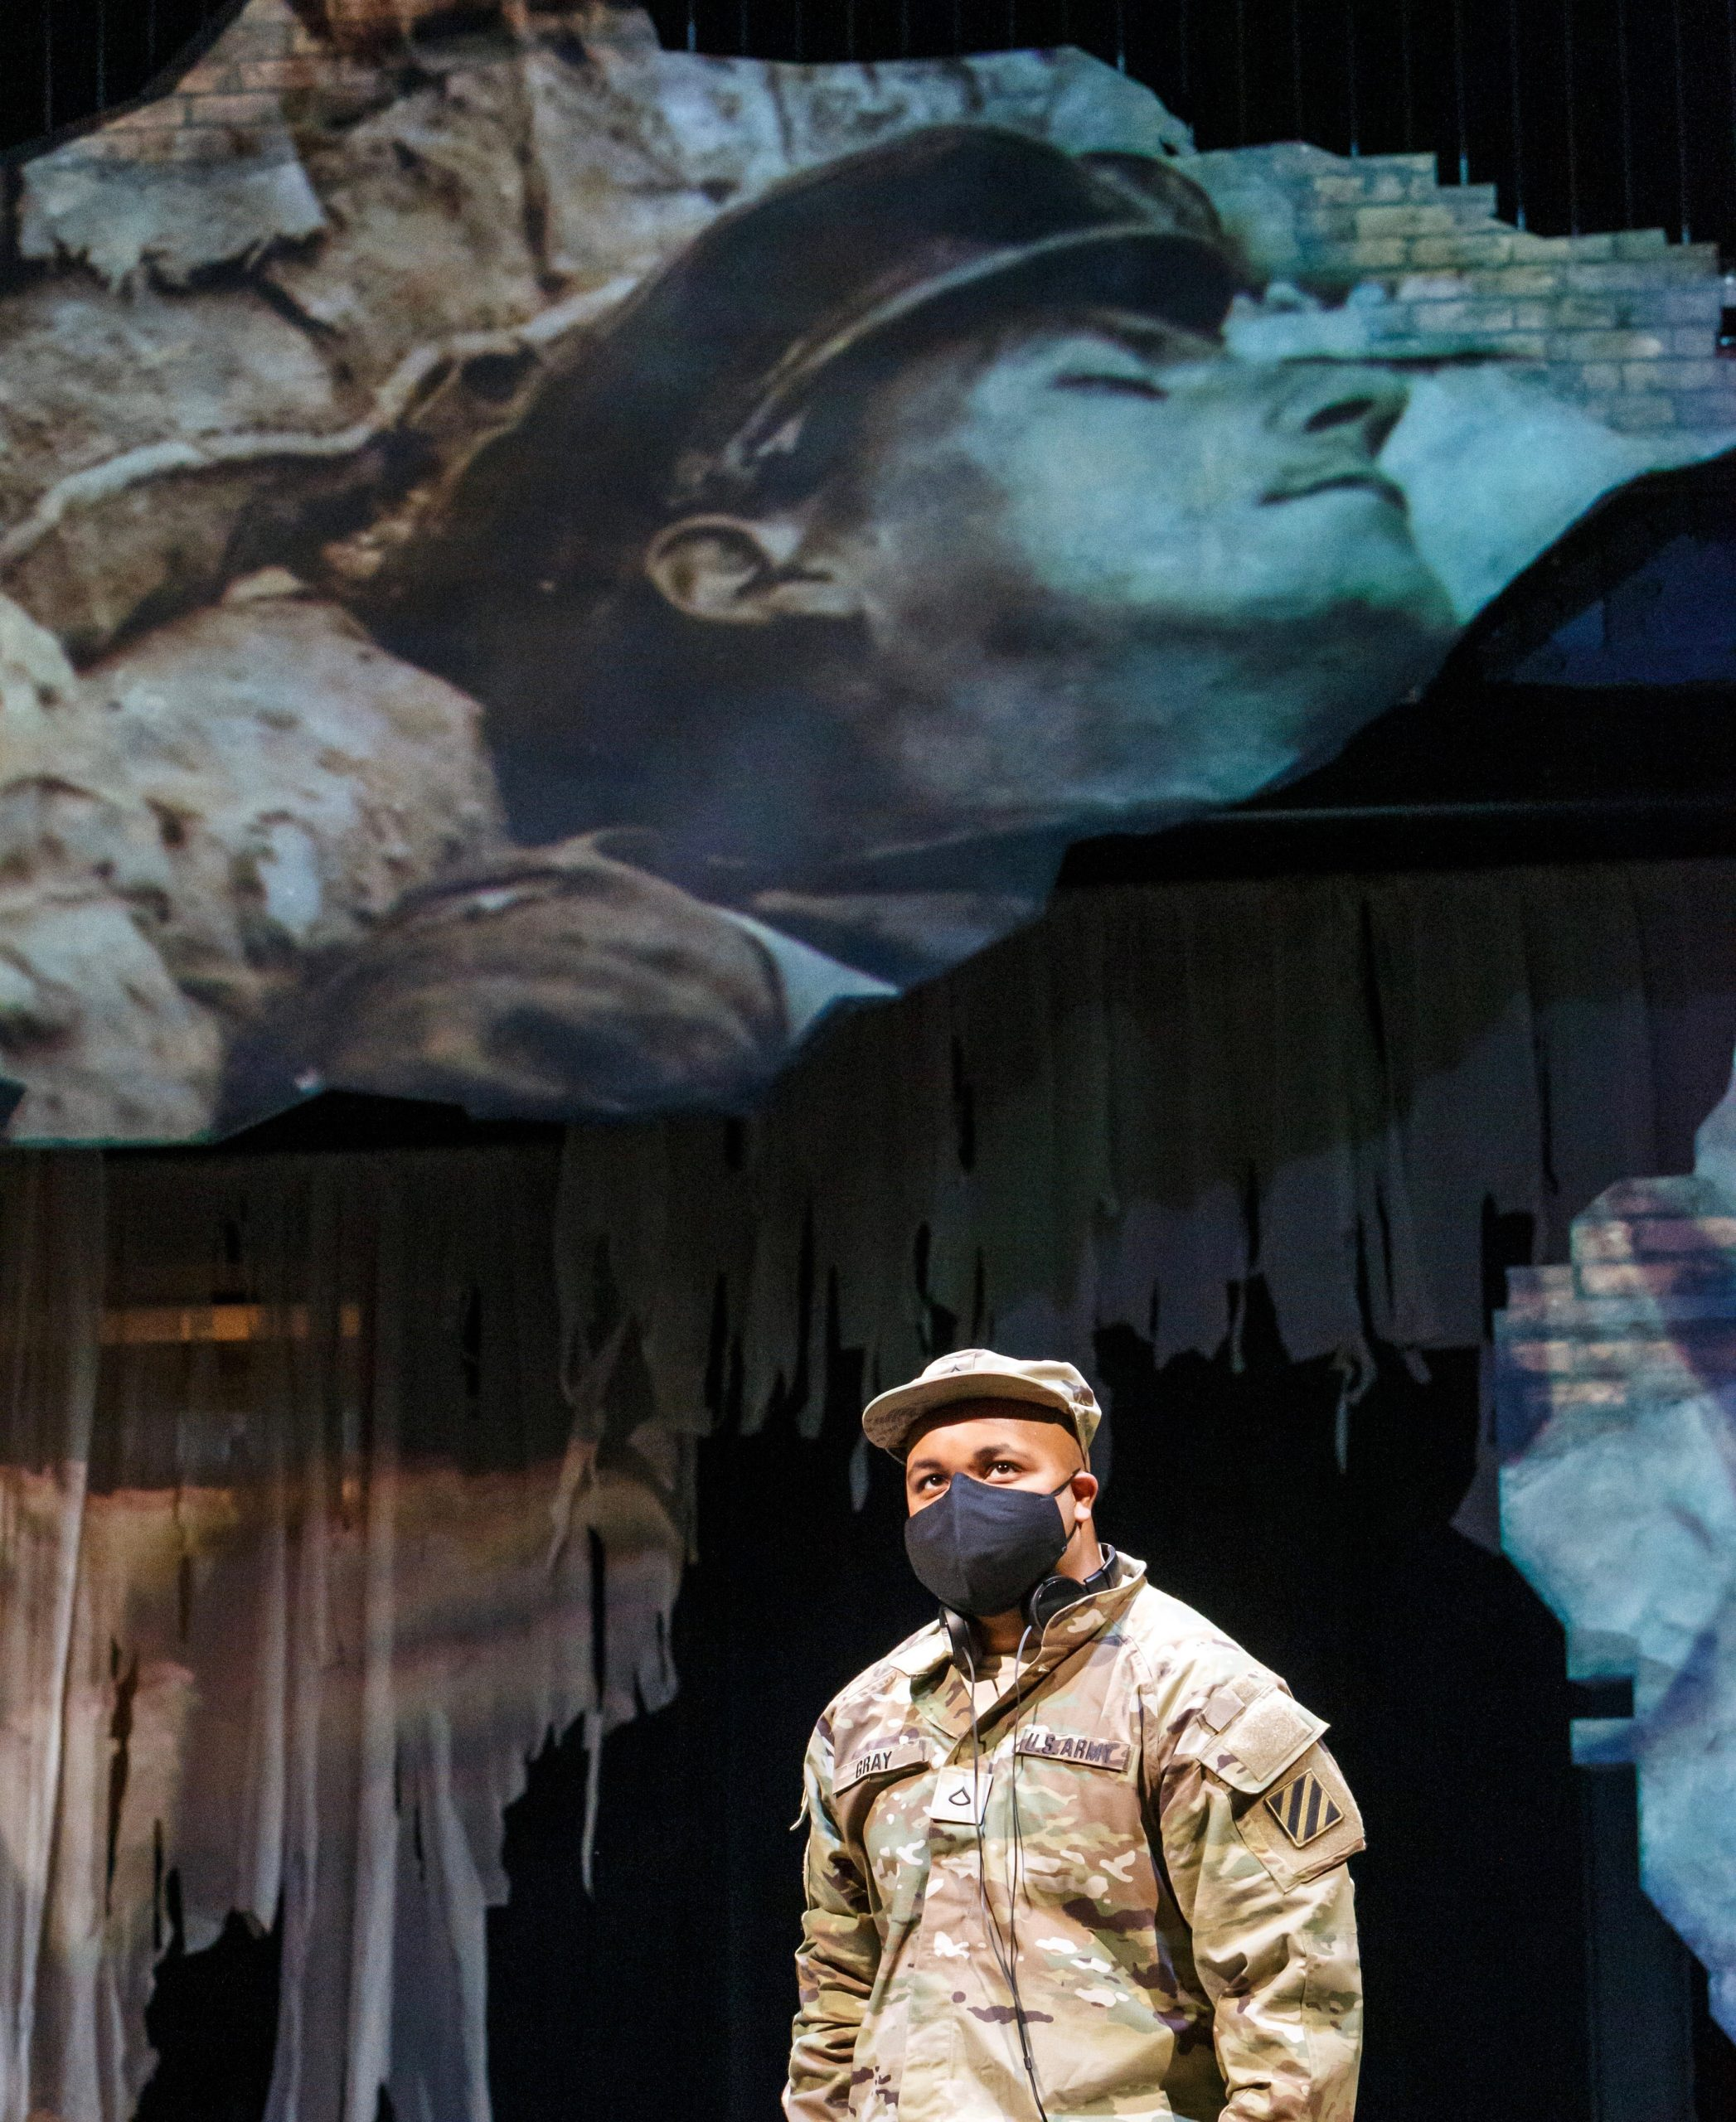 Baritone Yazid Gray soldiers on beneath a looming, projected nightmarish image in Pittsburgh Opera's 'Soldier Songs.' (photo: David Bachman Photography)